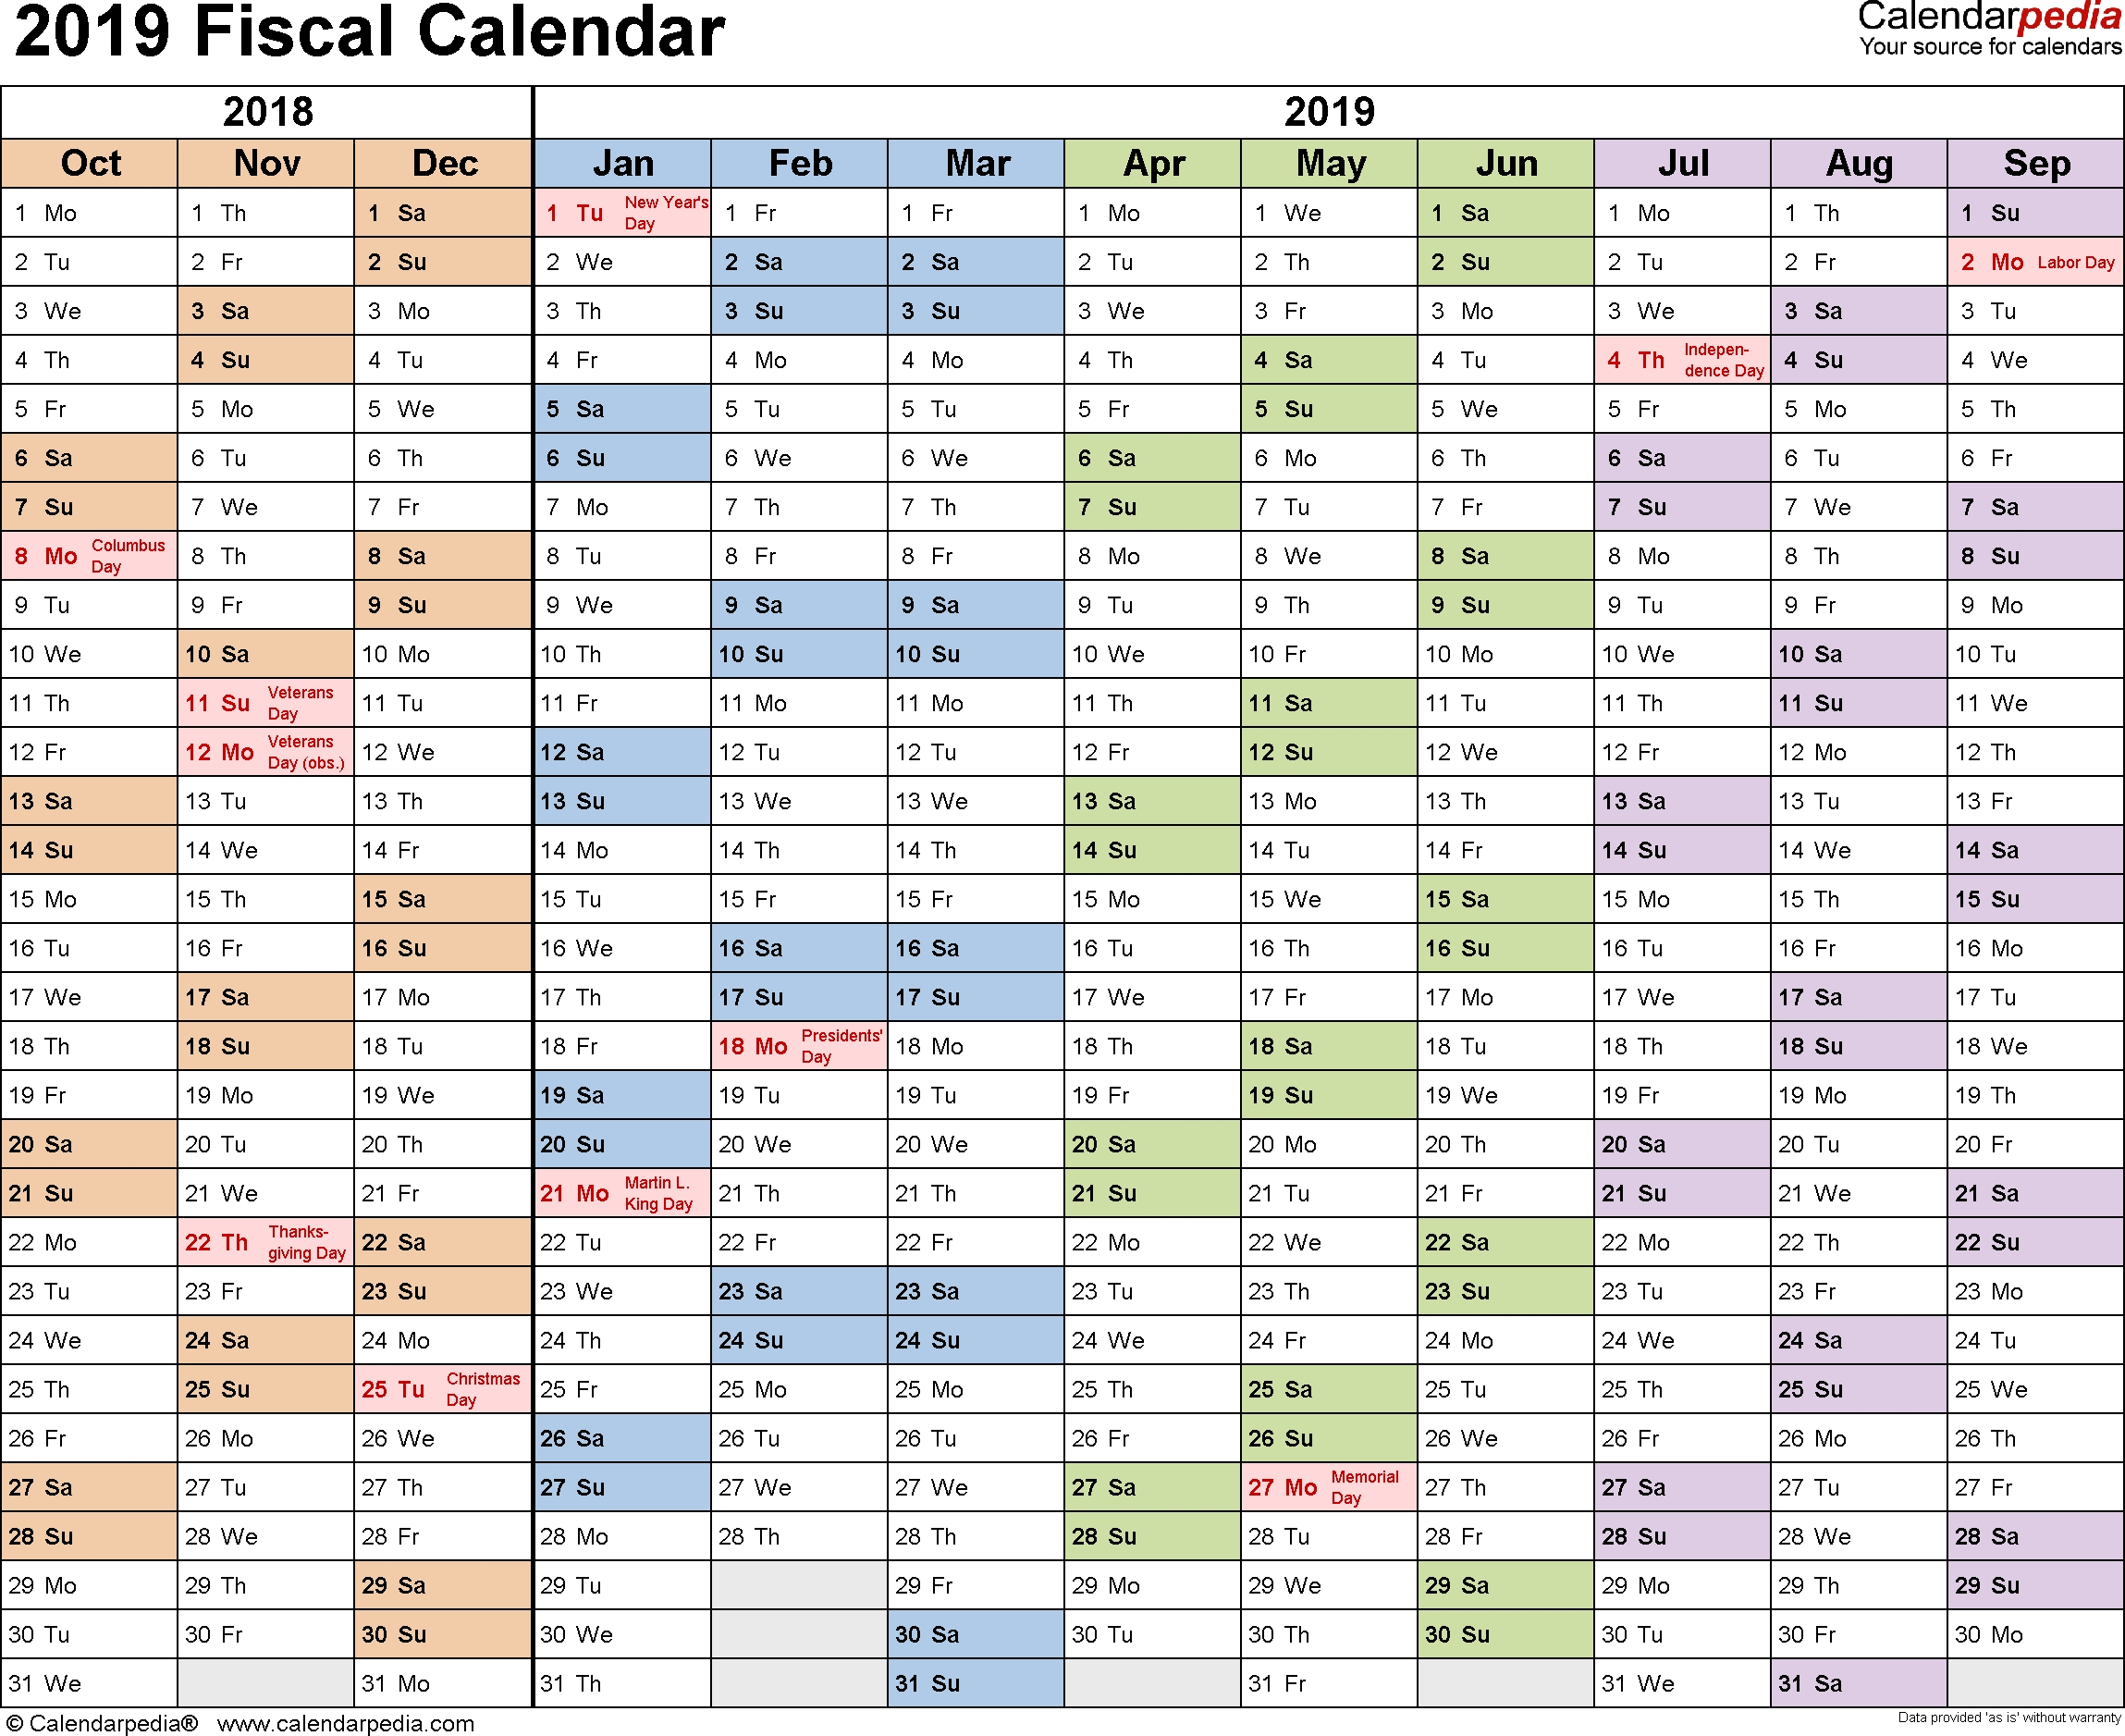 Fiscal Calendars 2019 As Free Printable Excel Templates for Tax Calendar For 2019/2020